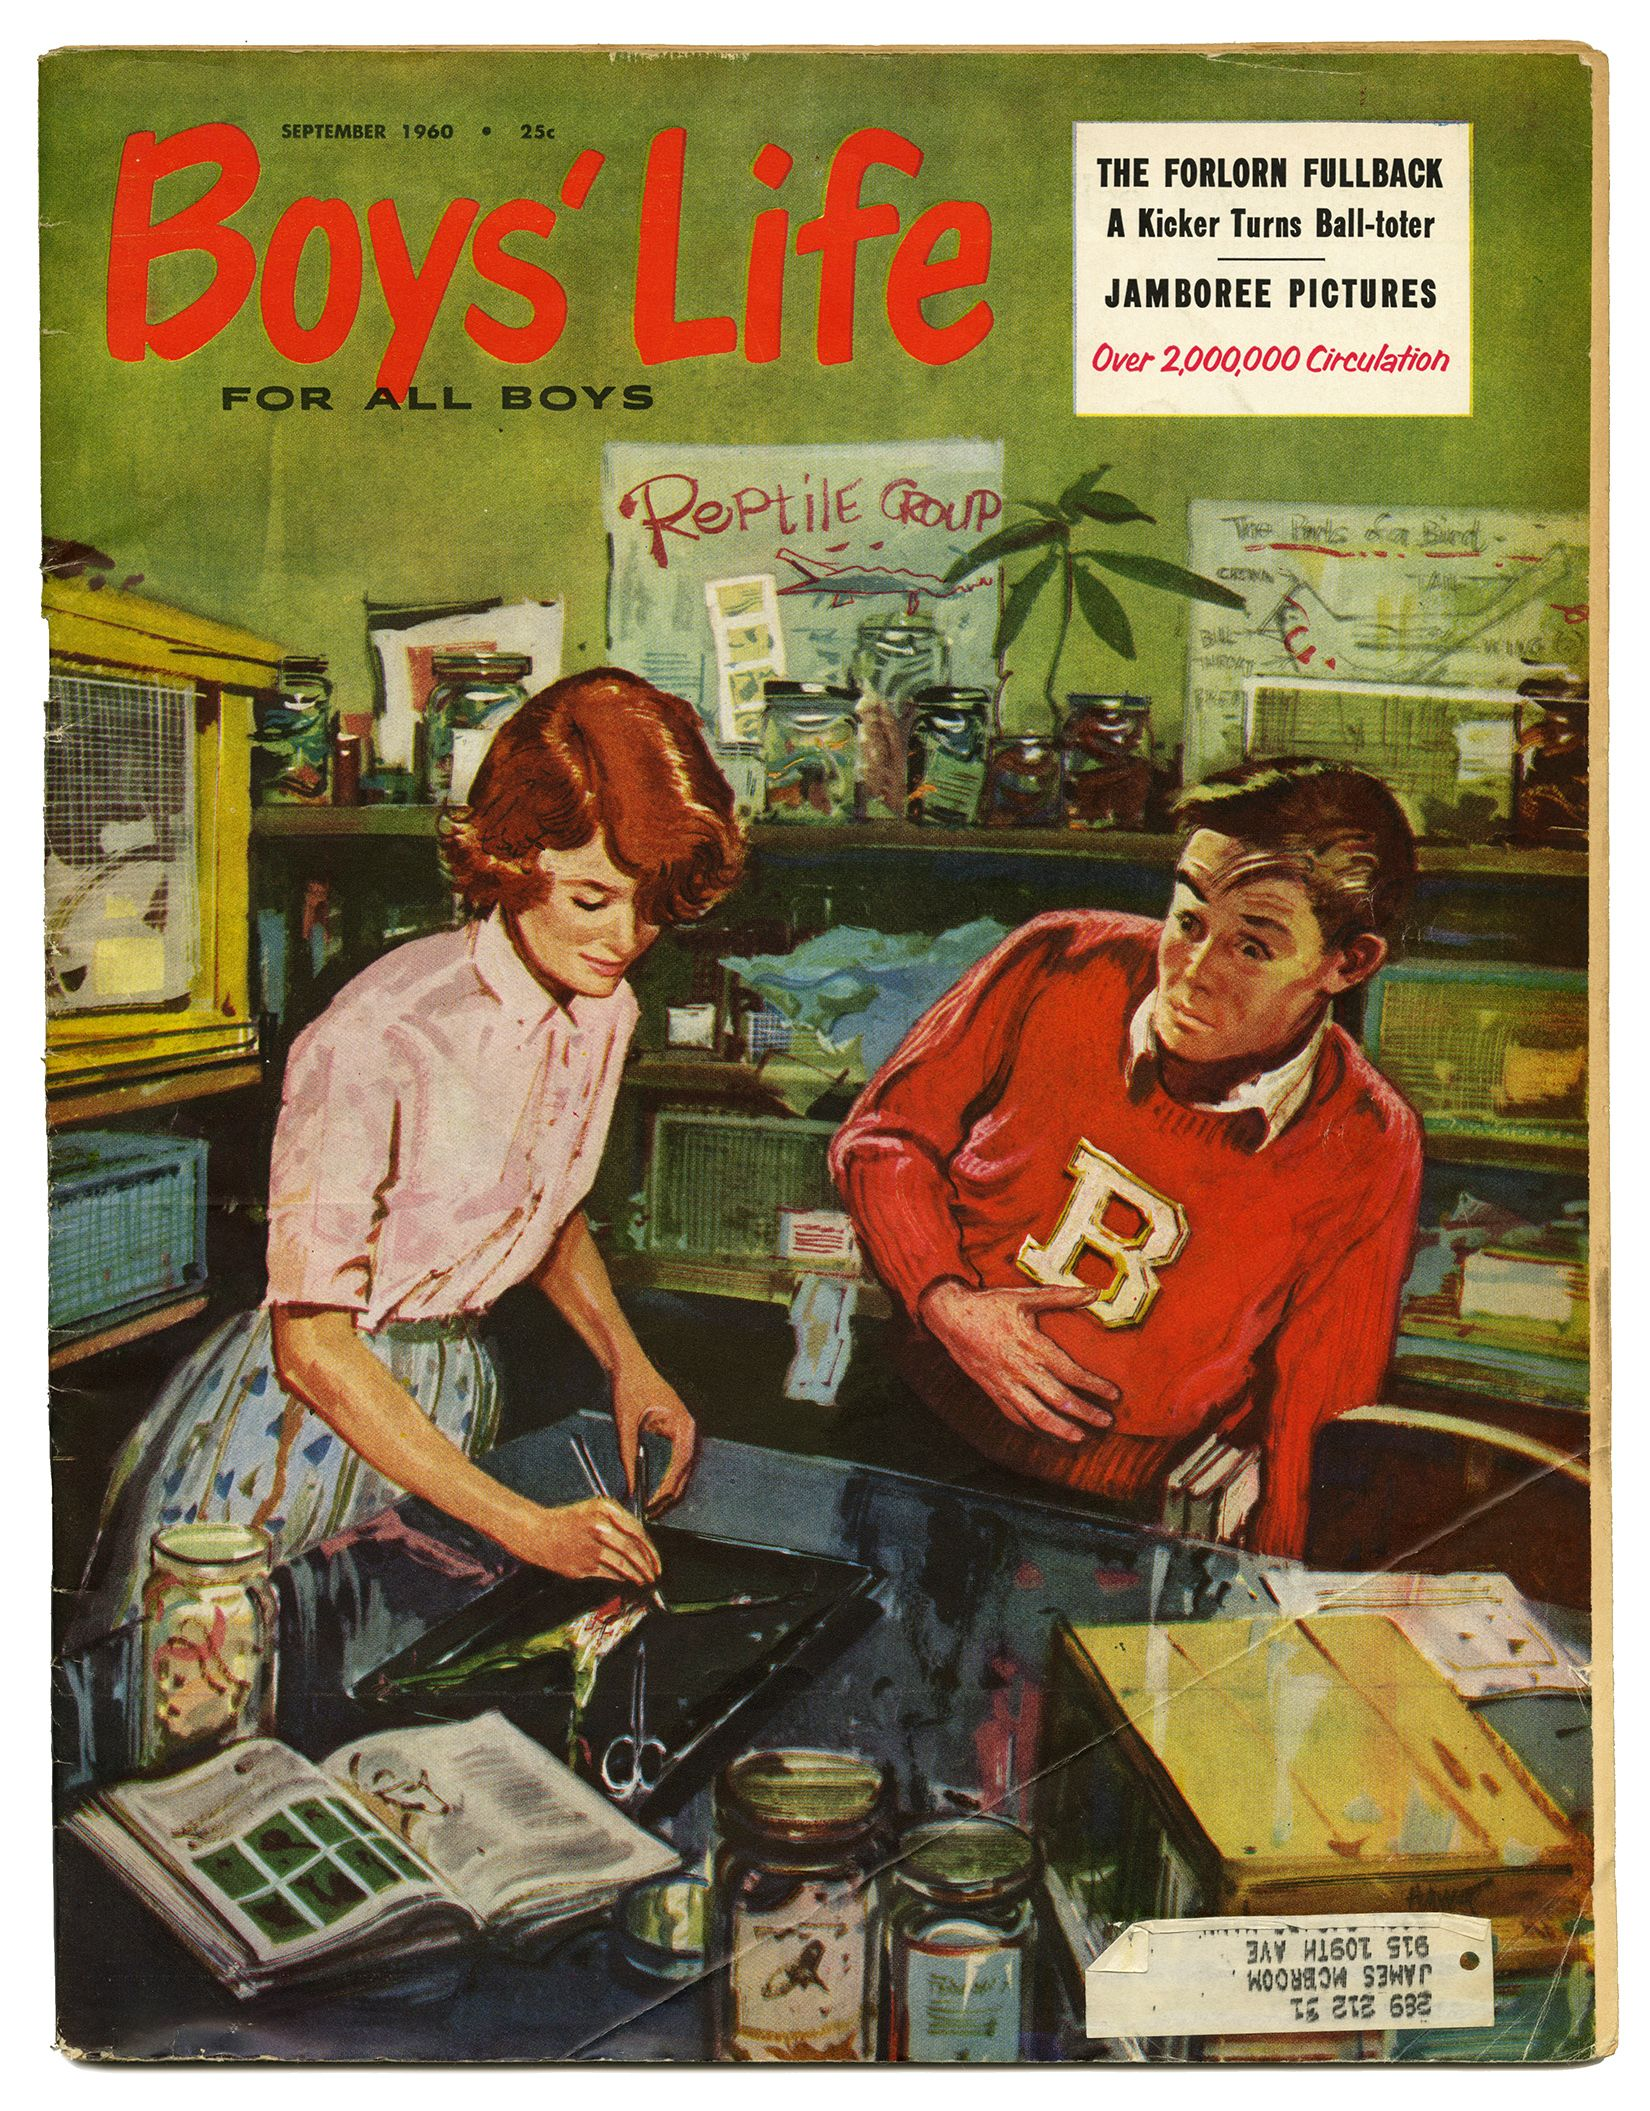 1960 Boys' Life magazine | Media, Movies, Magazines, More